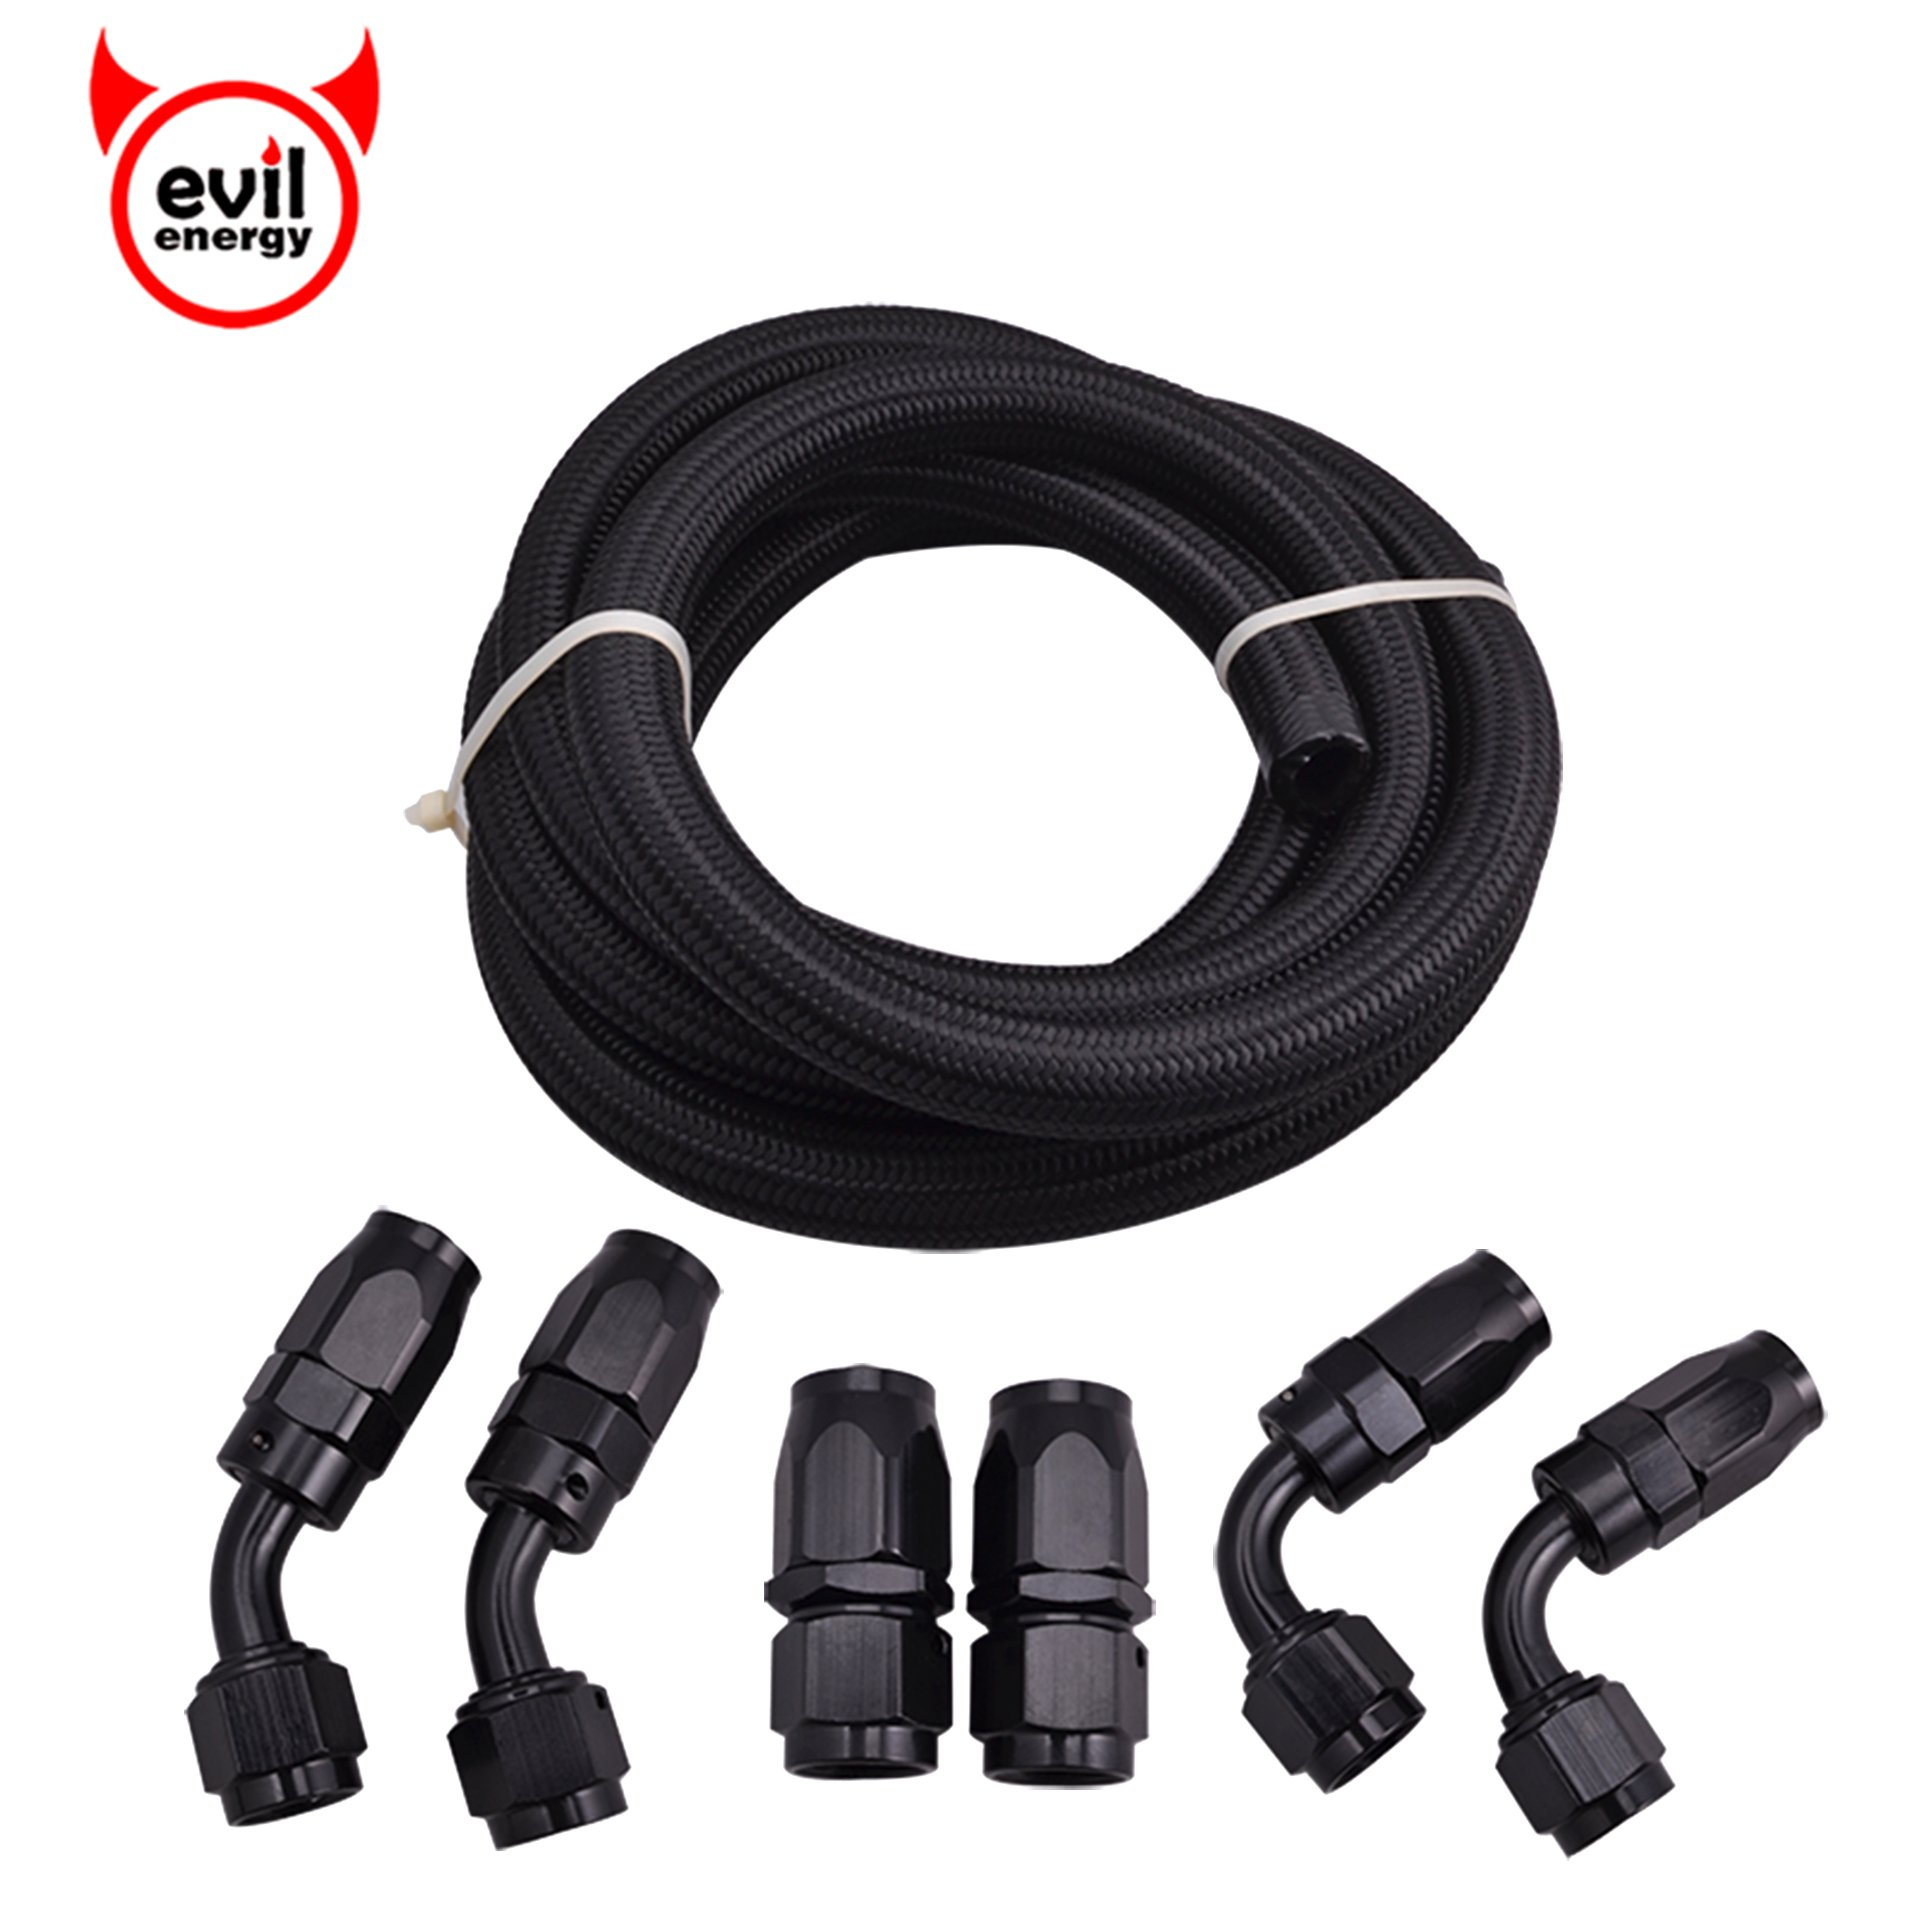 71YhvDUAPwL._SR500500_ fuel line kits amazon com